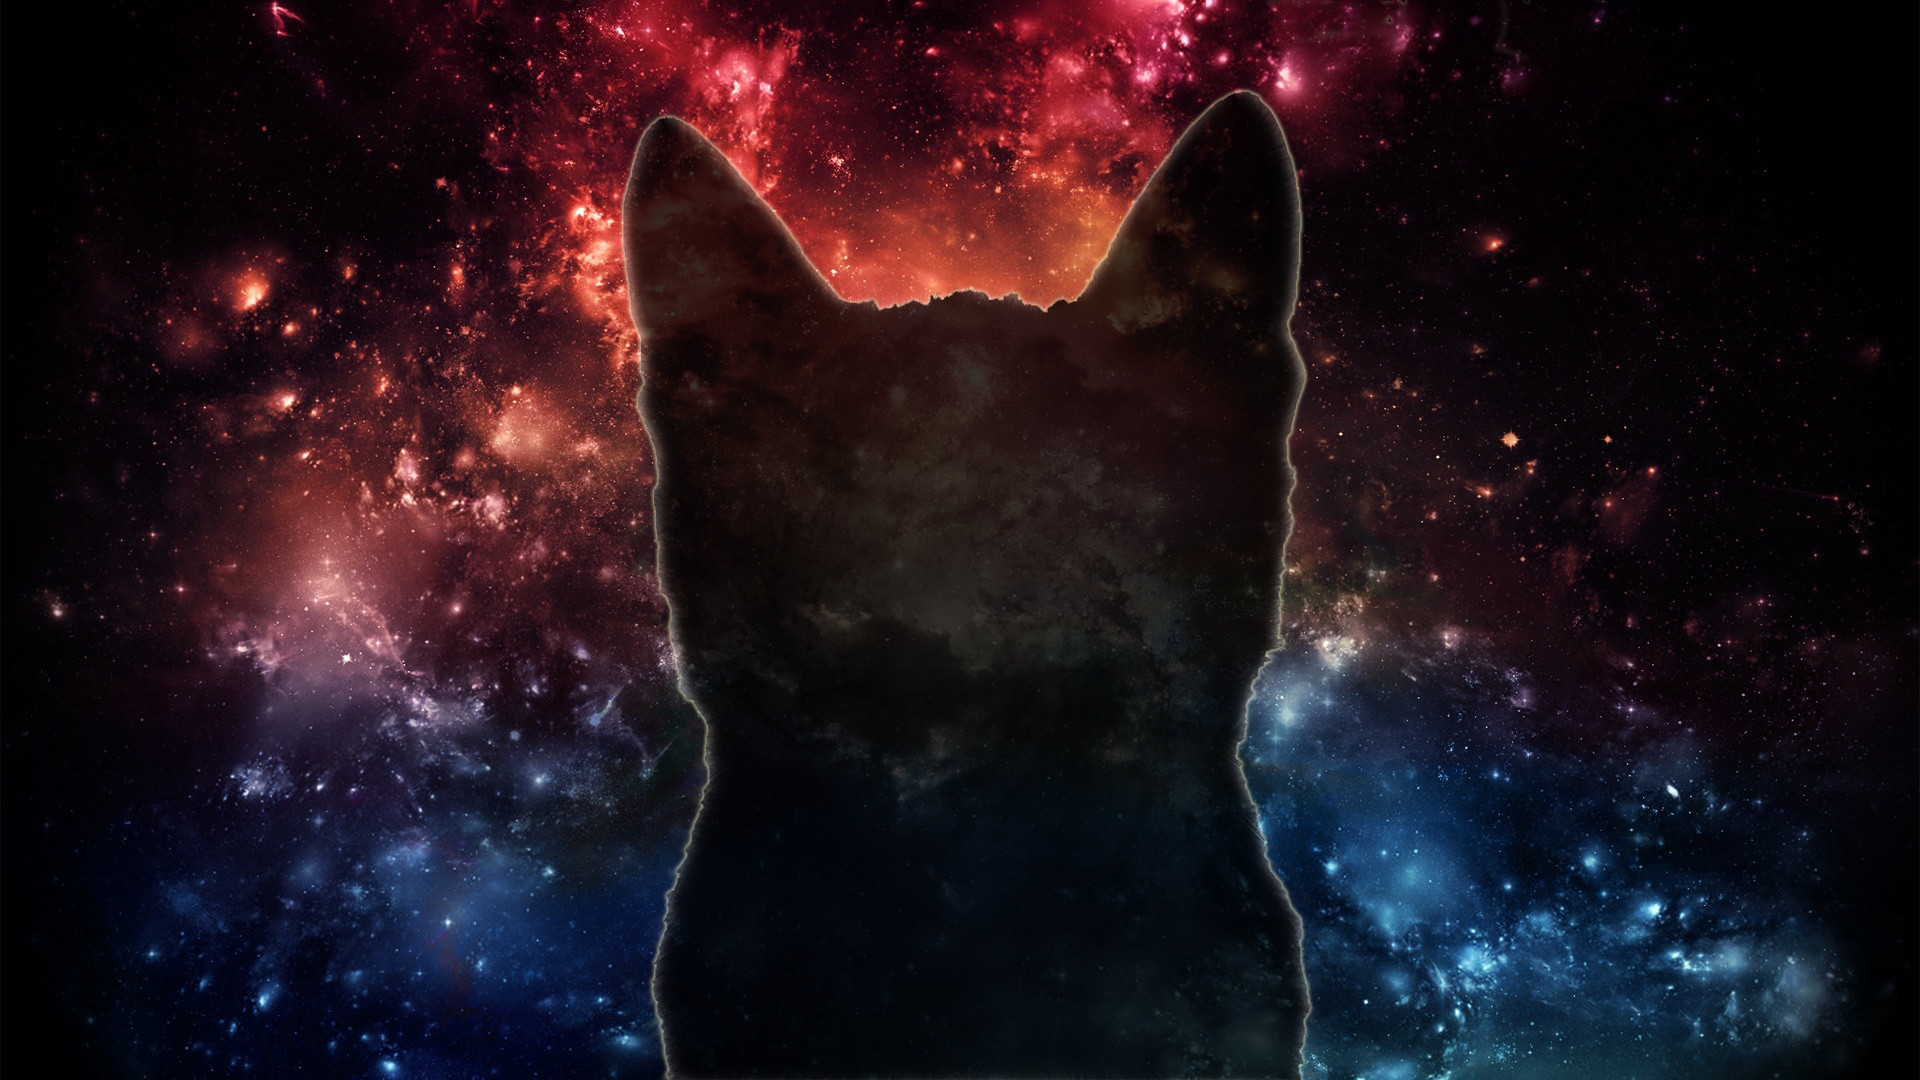 Space cats hd wallpaper 78 images - Space backgrounds 1920x1080 ...